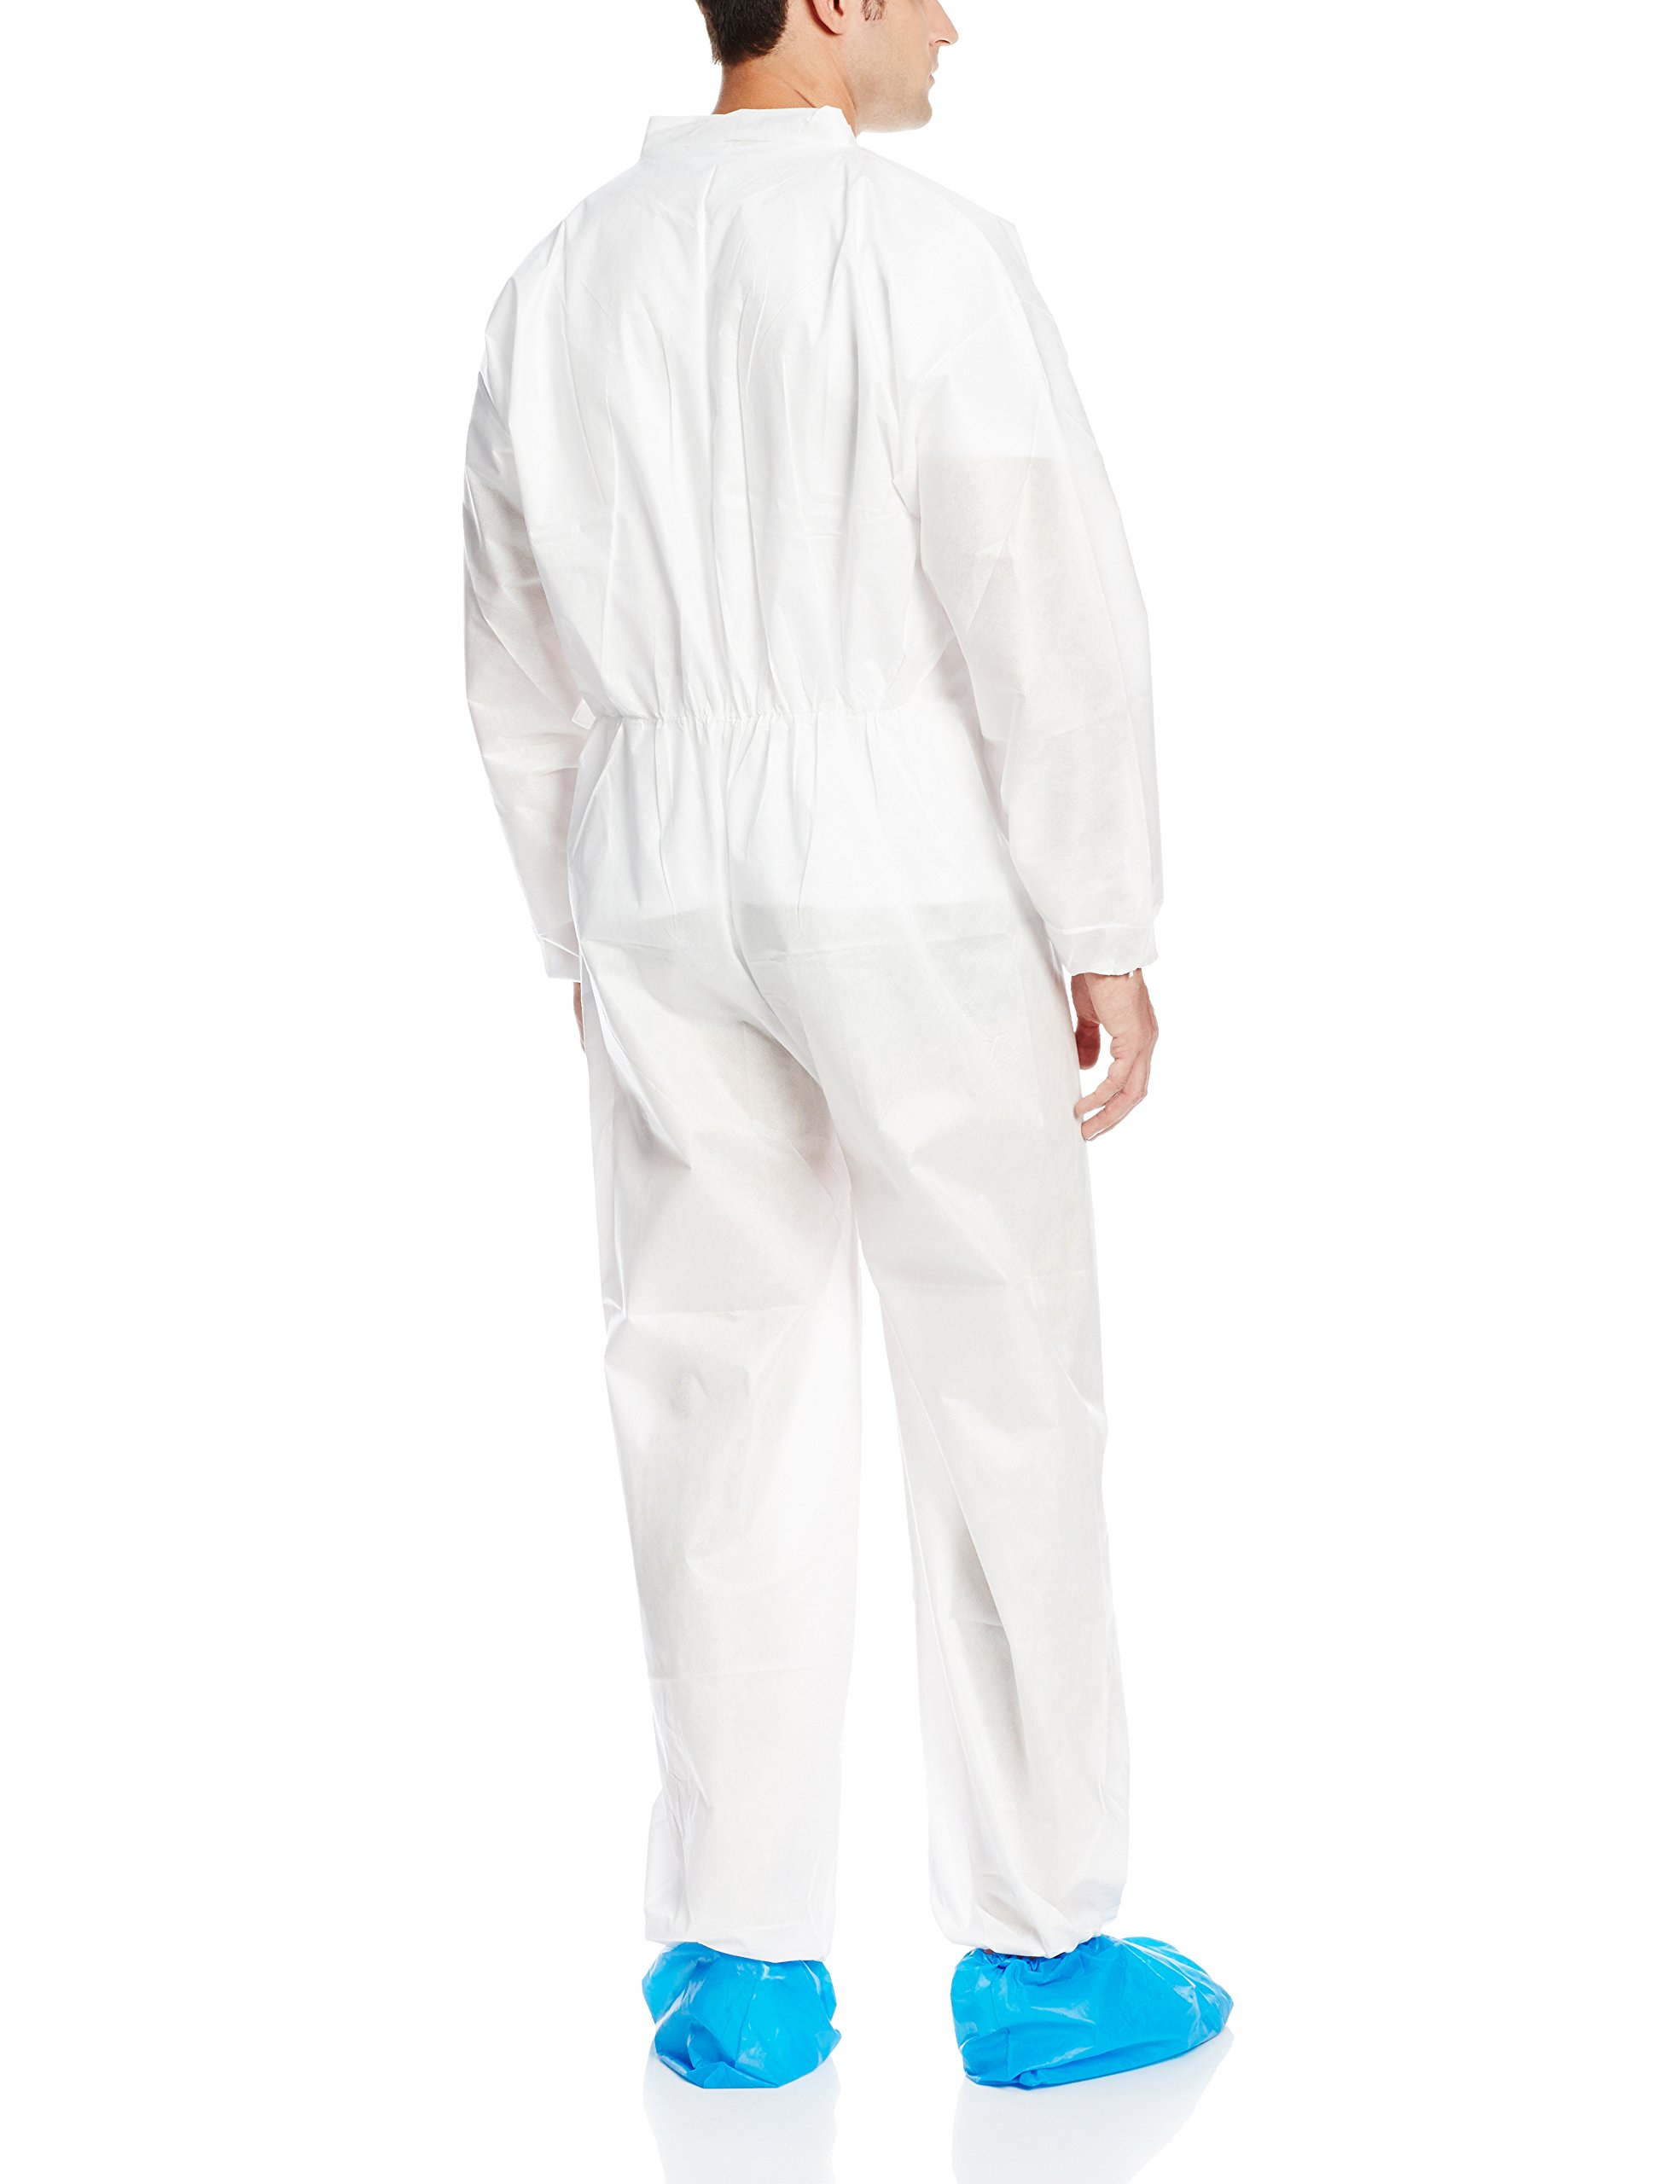 ValuMax 4802WHXL Ultra SMS Disposable Coverall, Fluid Resistant, Breathable, Elastic Cuffs and Ankles, White, XL, Case of 25 by Valumax (Image #2)